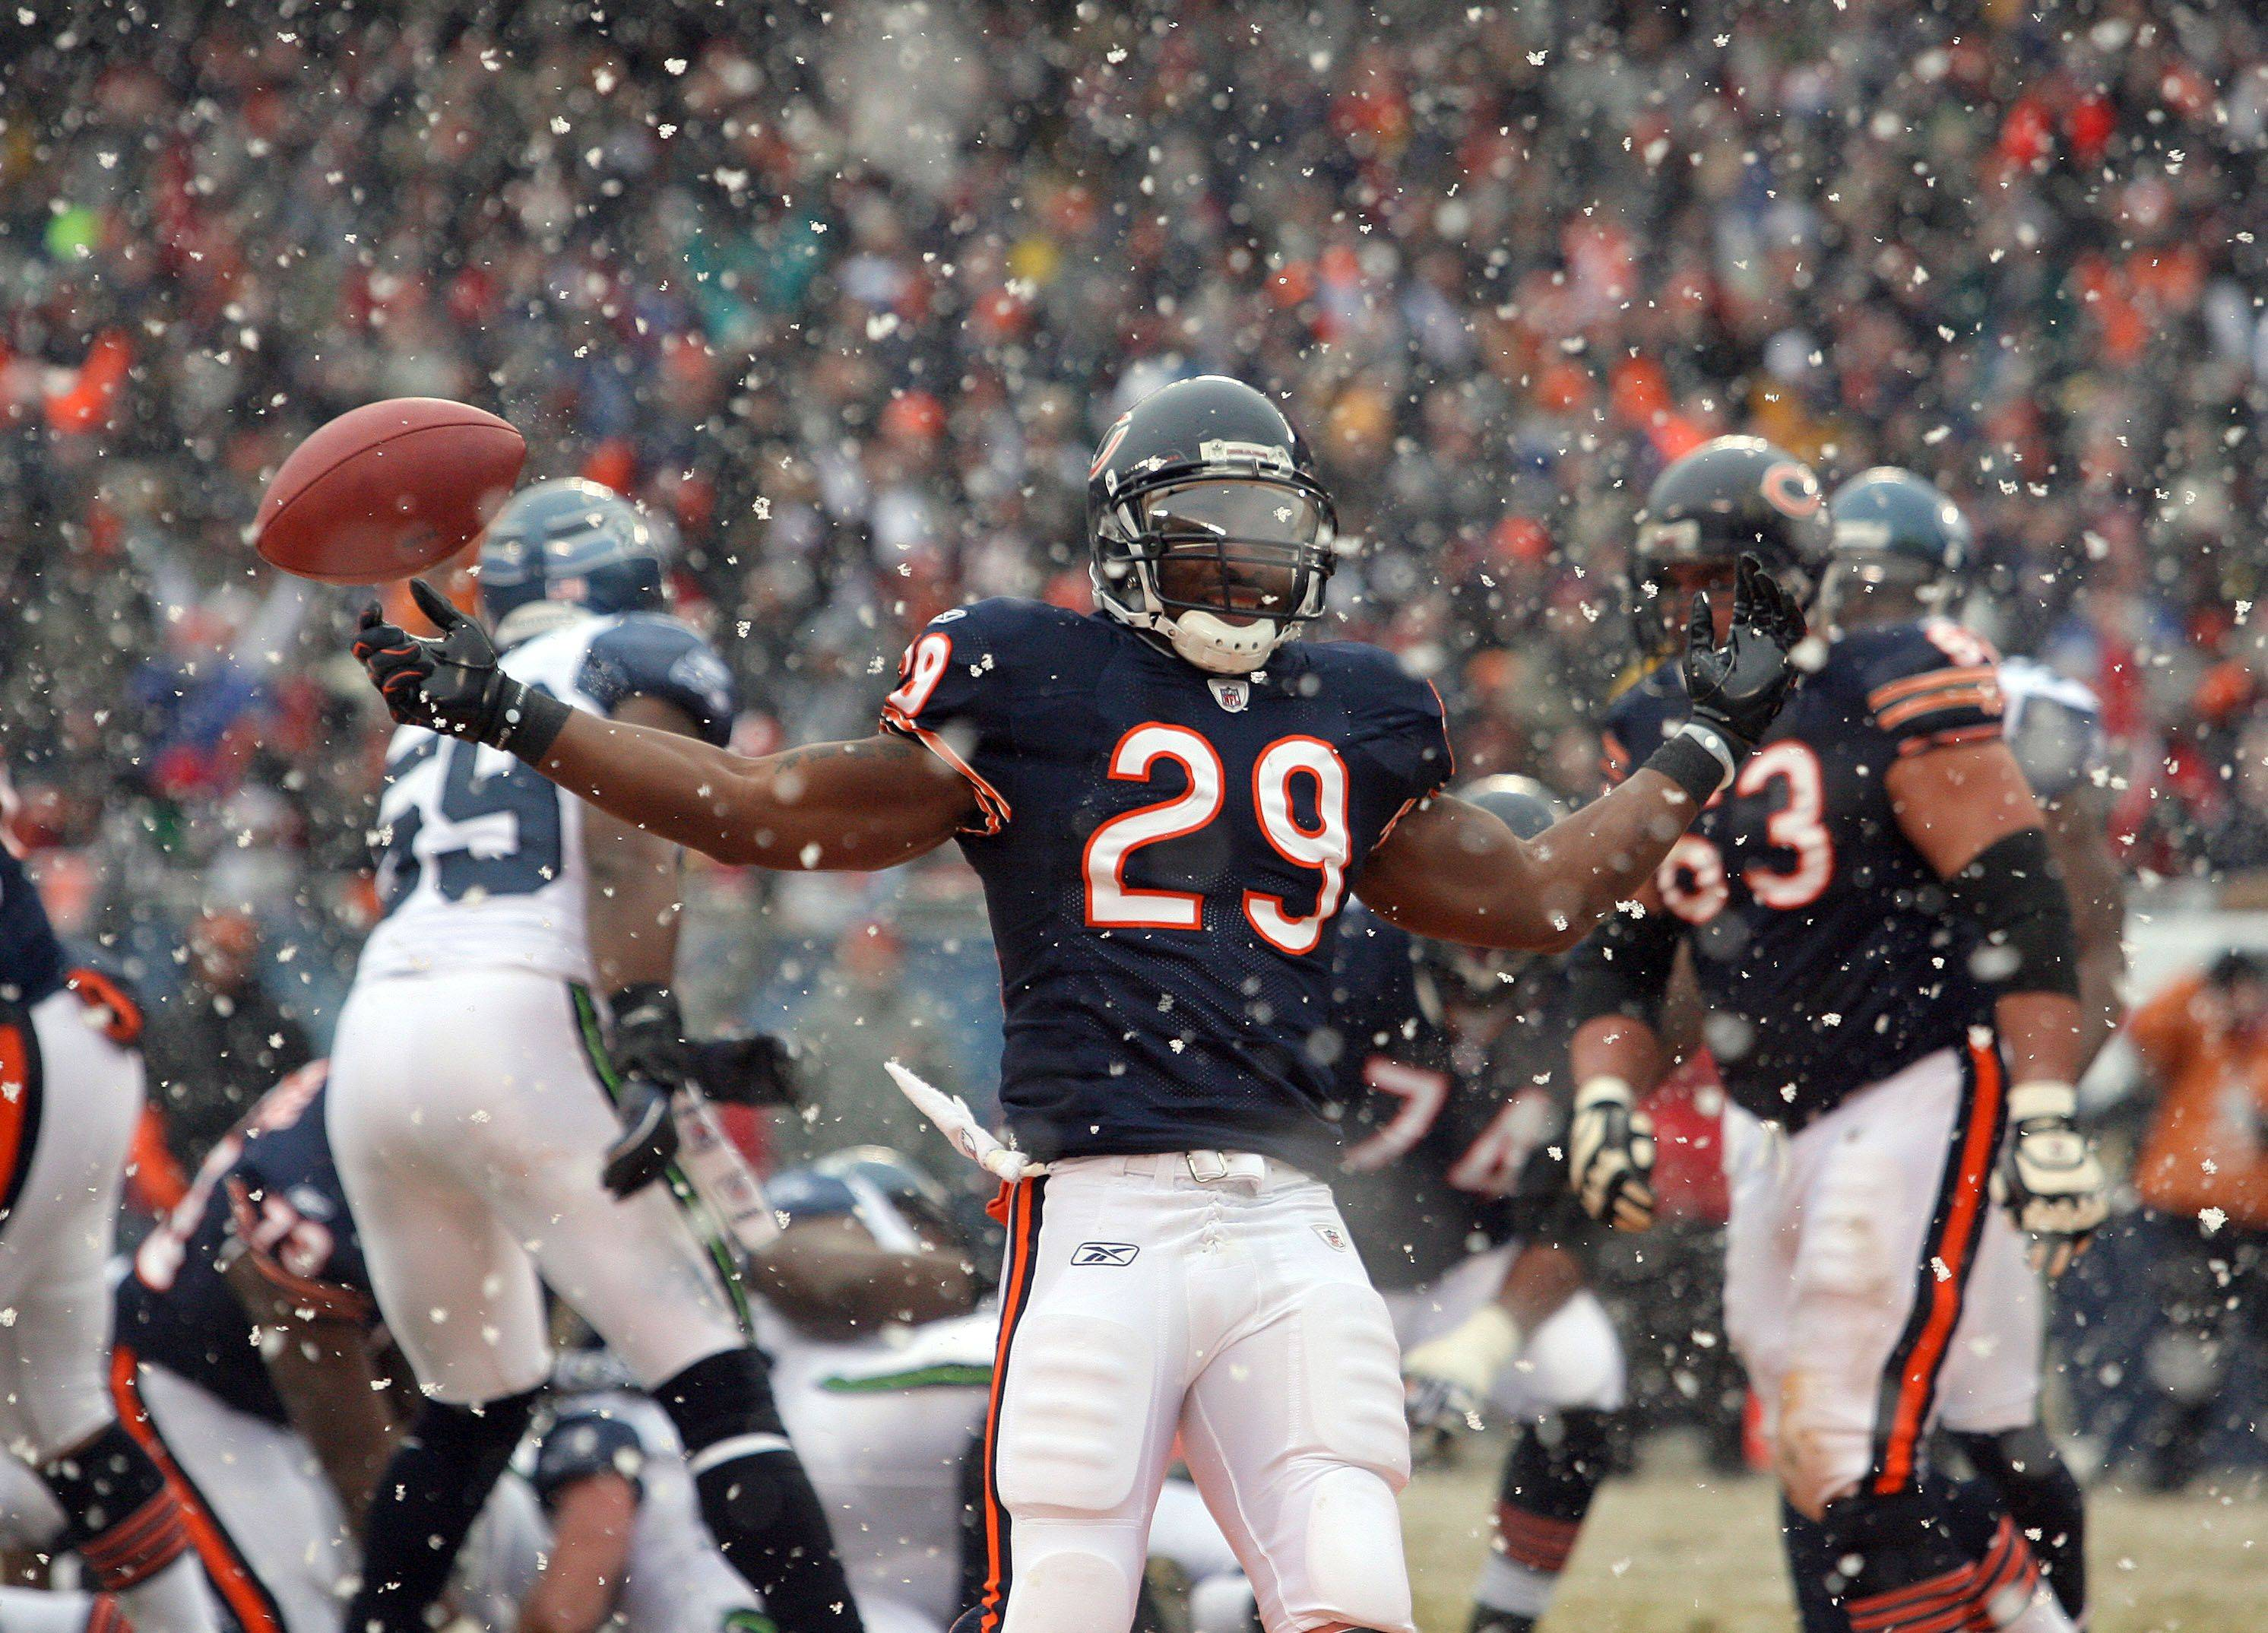 Bring on the Packers as Bears roll to 35-24 win